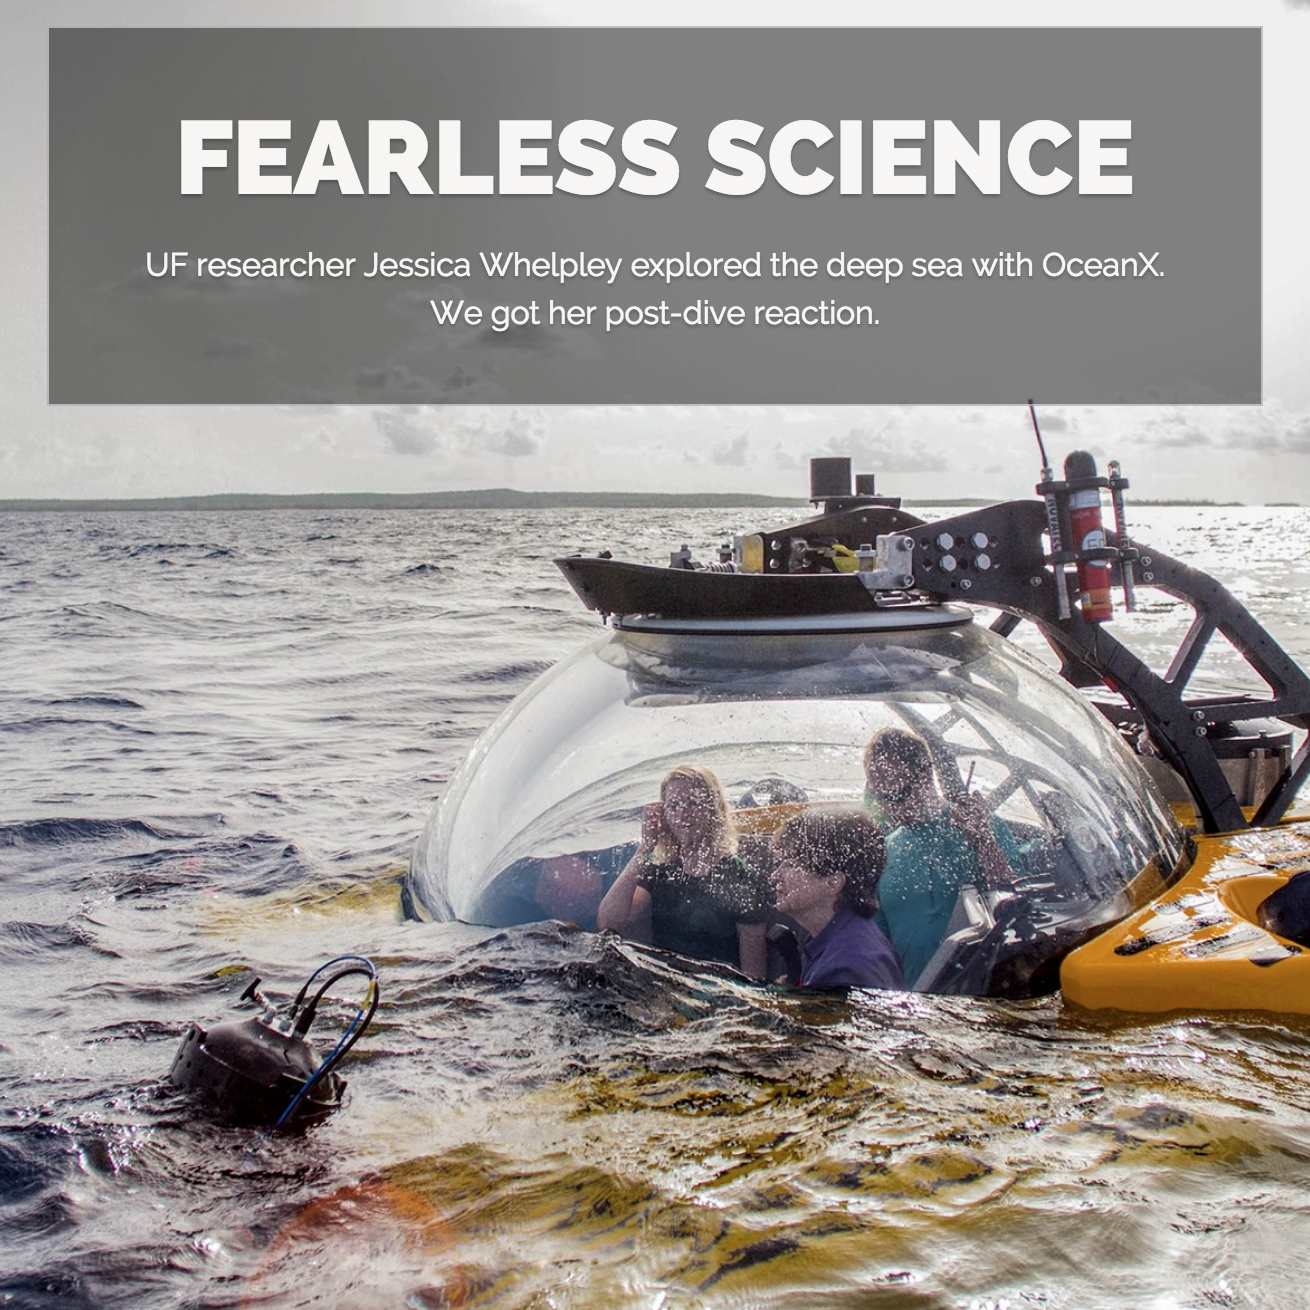 Jessica Whelpley Featured in Fearless Science Article